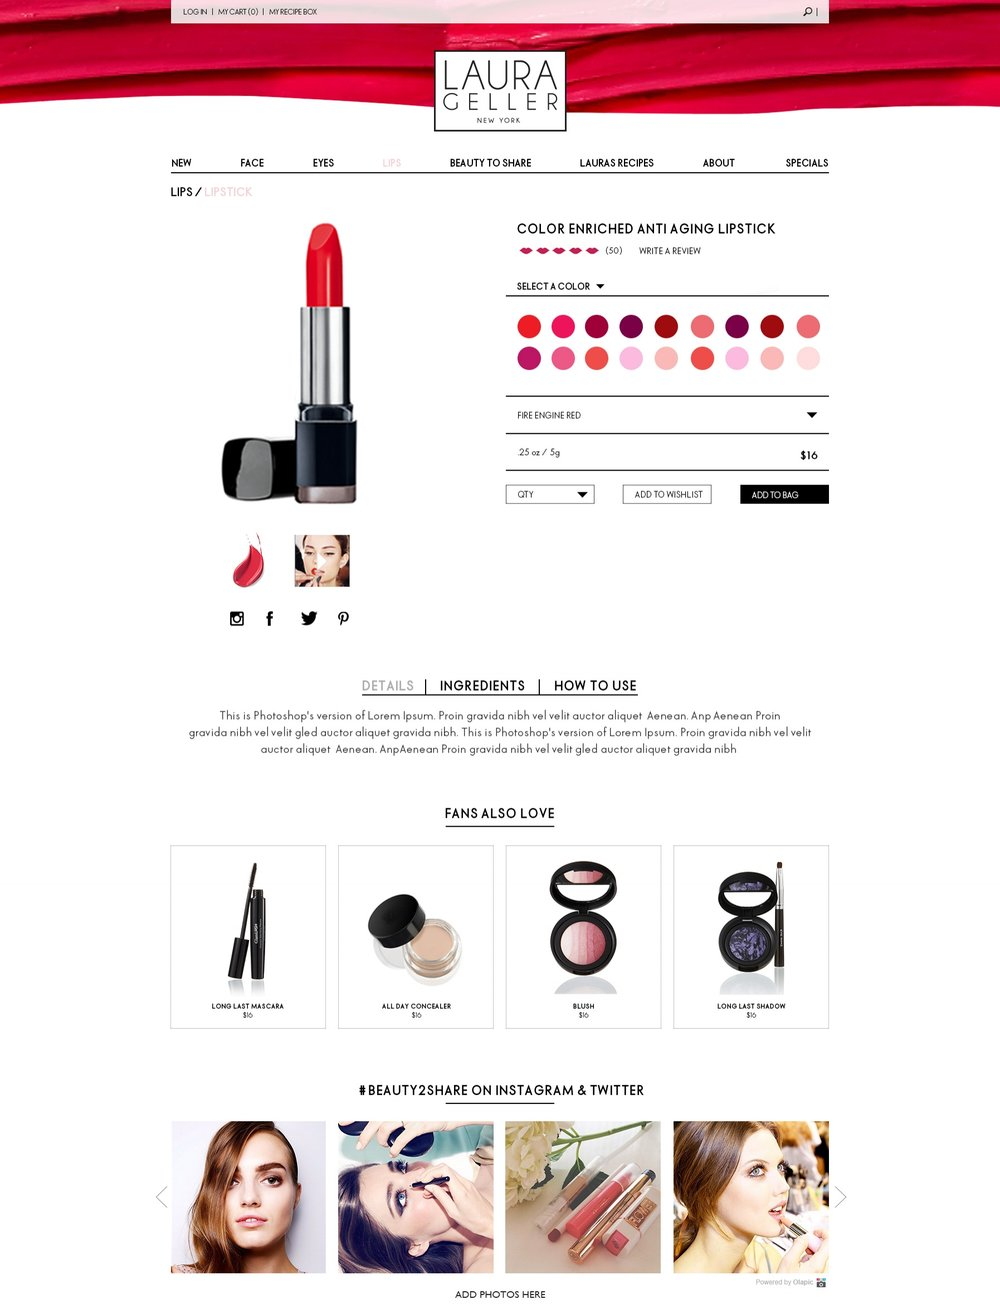 Laura_Geller_Website_Product_Info_Page_concept3_R11.jpg